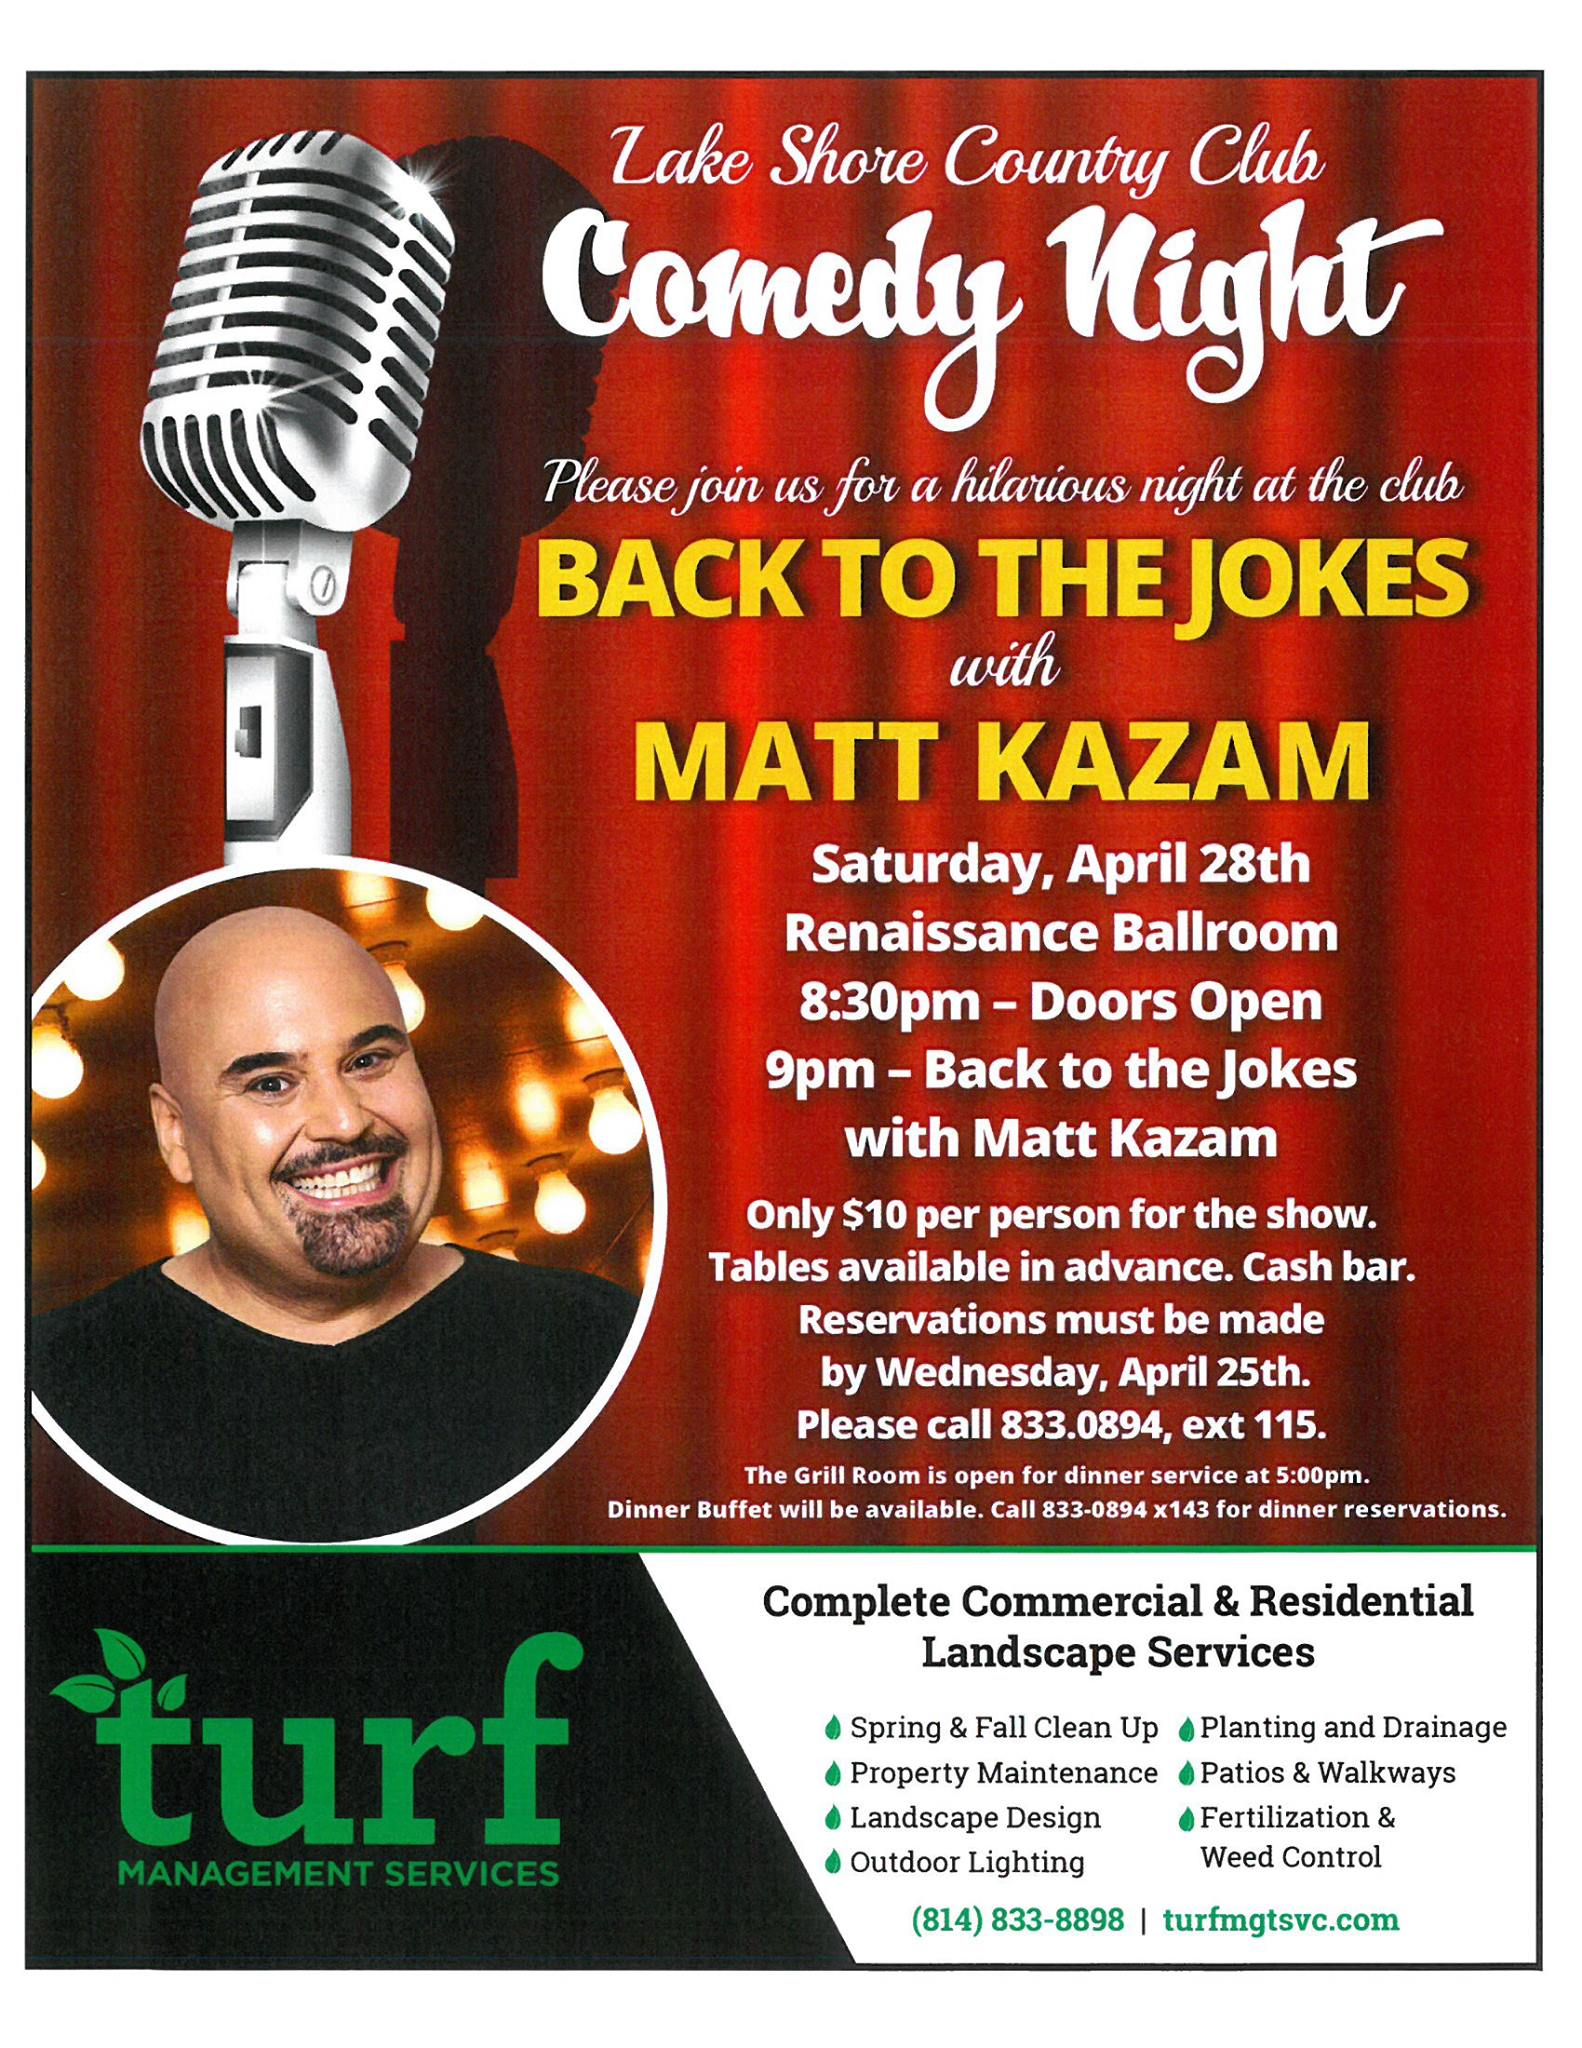 http://www.lakeshorecountryclub.com/uploads/slides/572164_april-2018-comedy-night.jpg